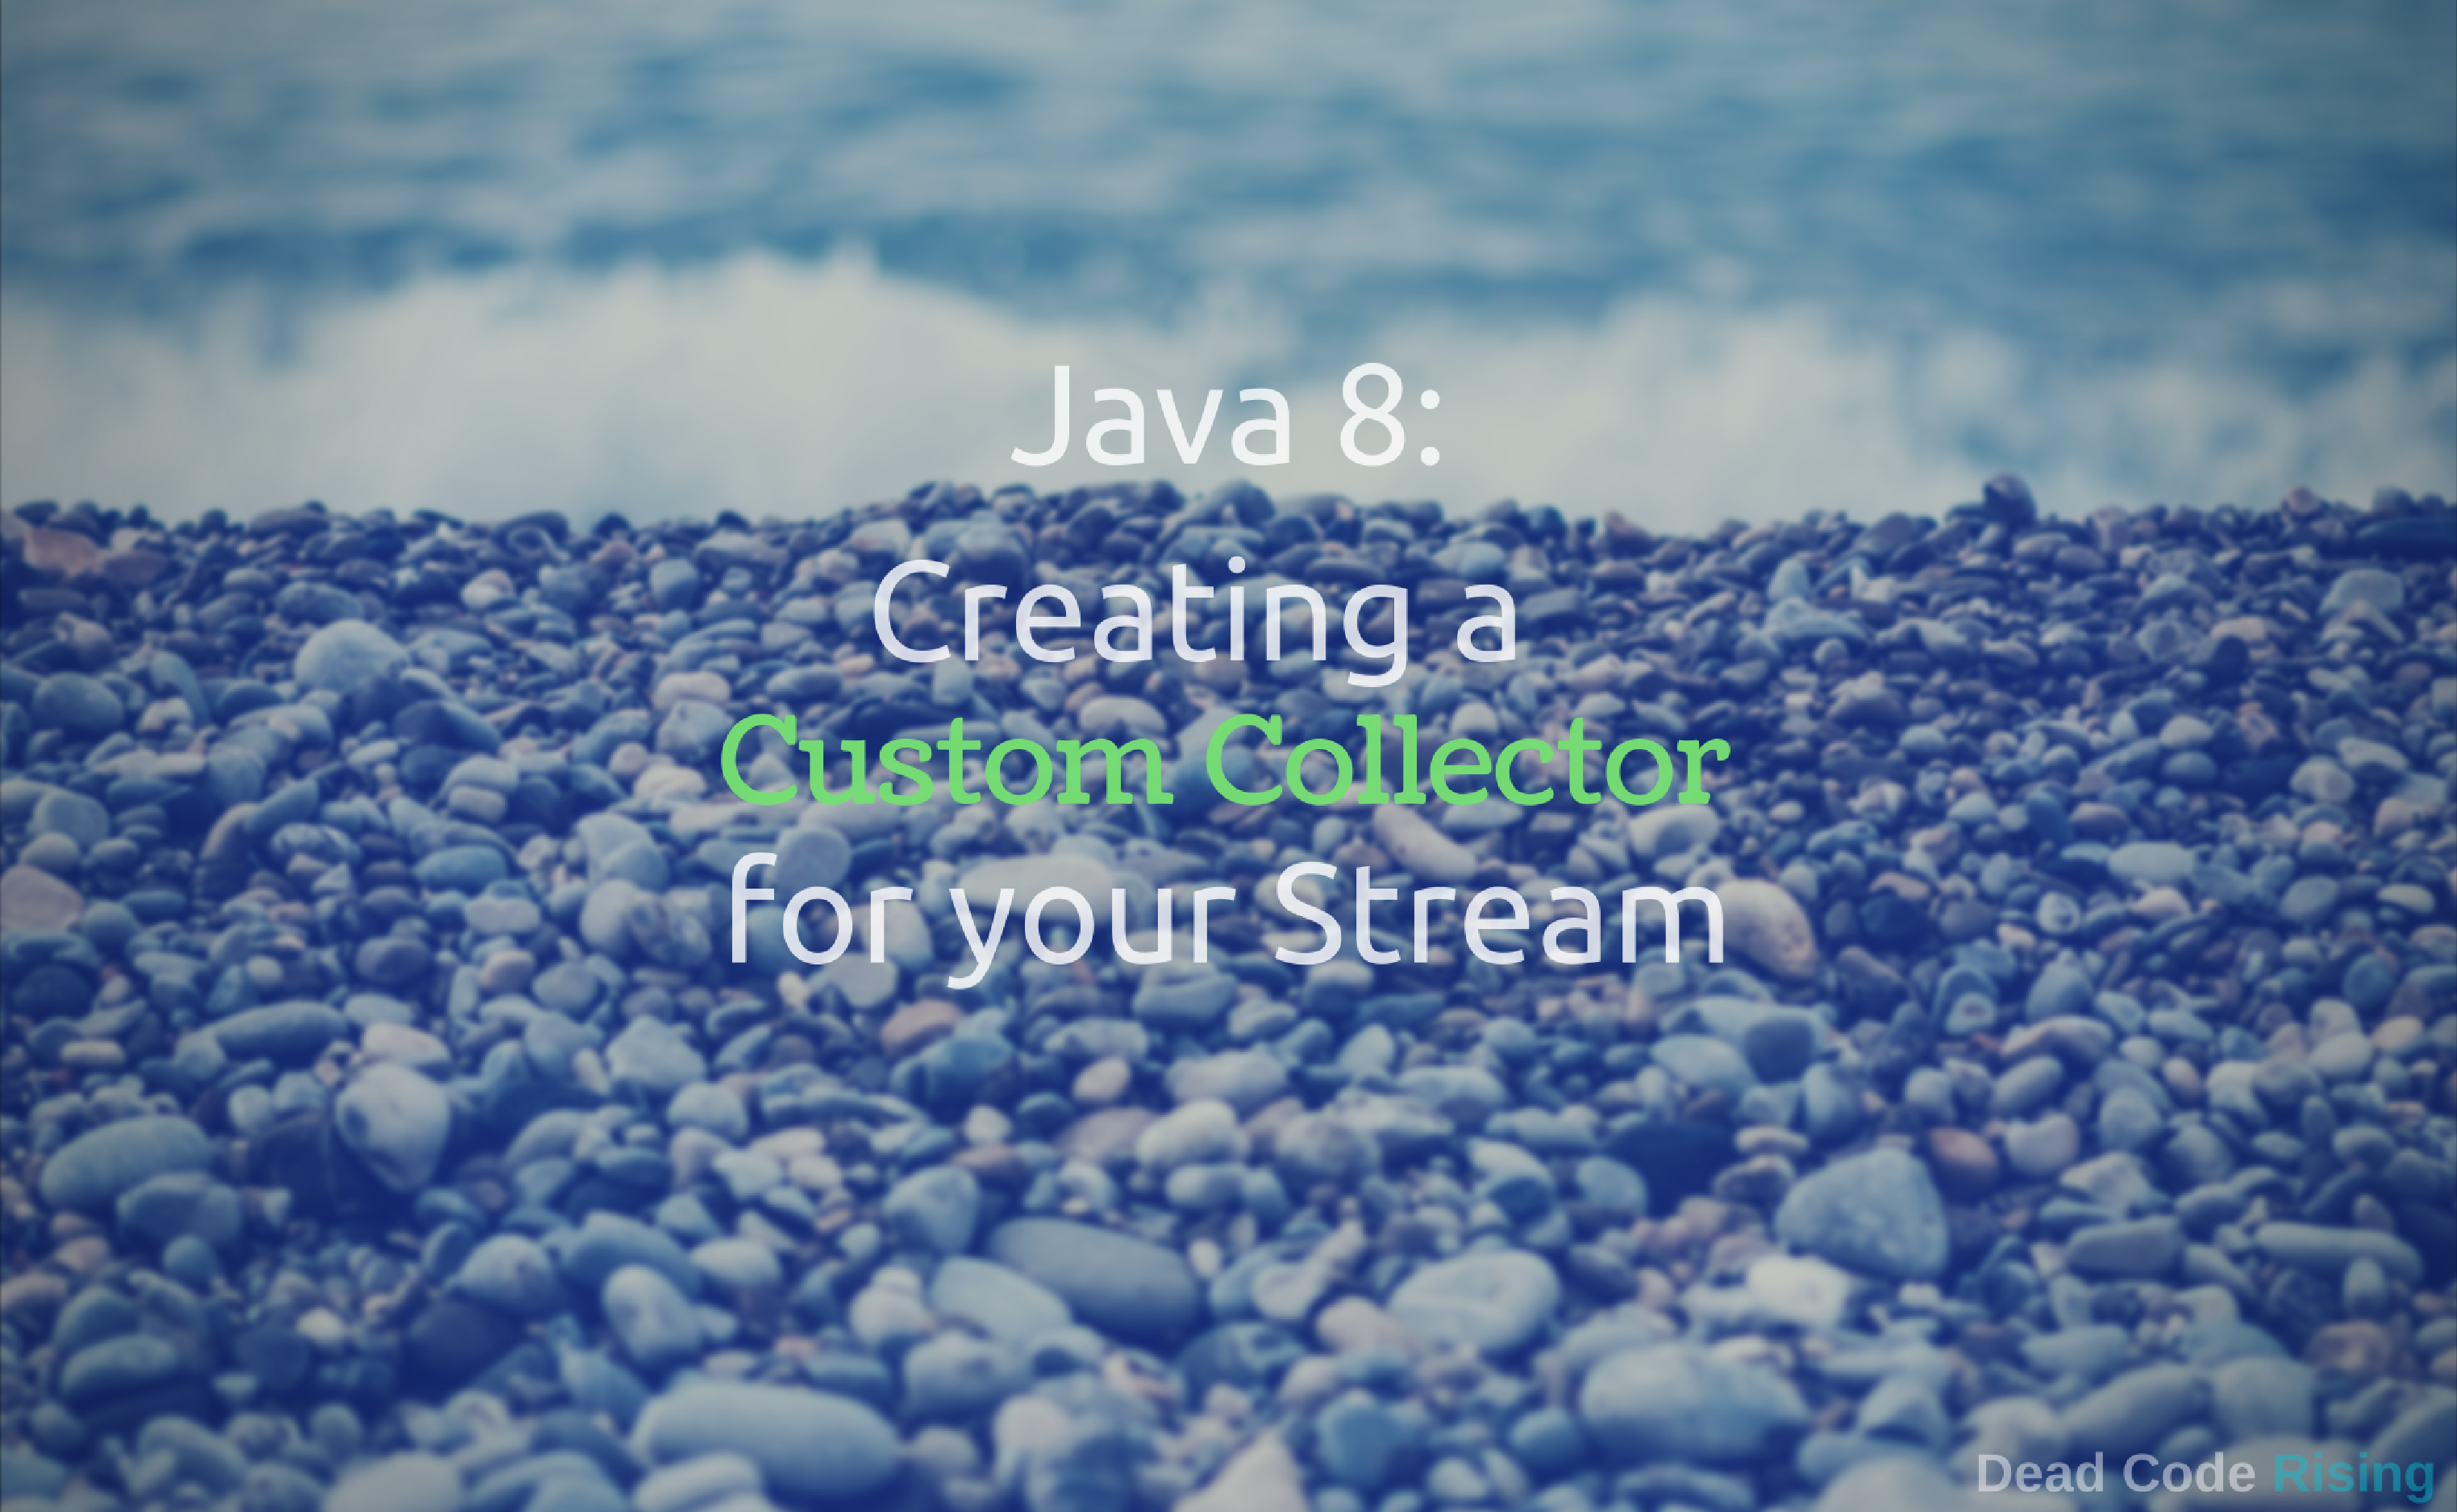 Java 8: Creating a custom Collector for your Stream